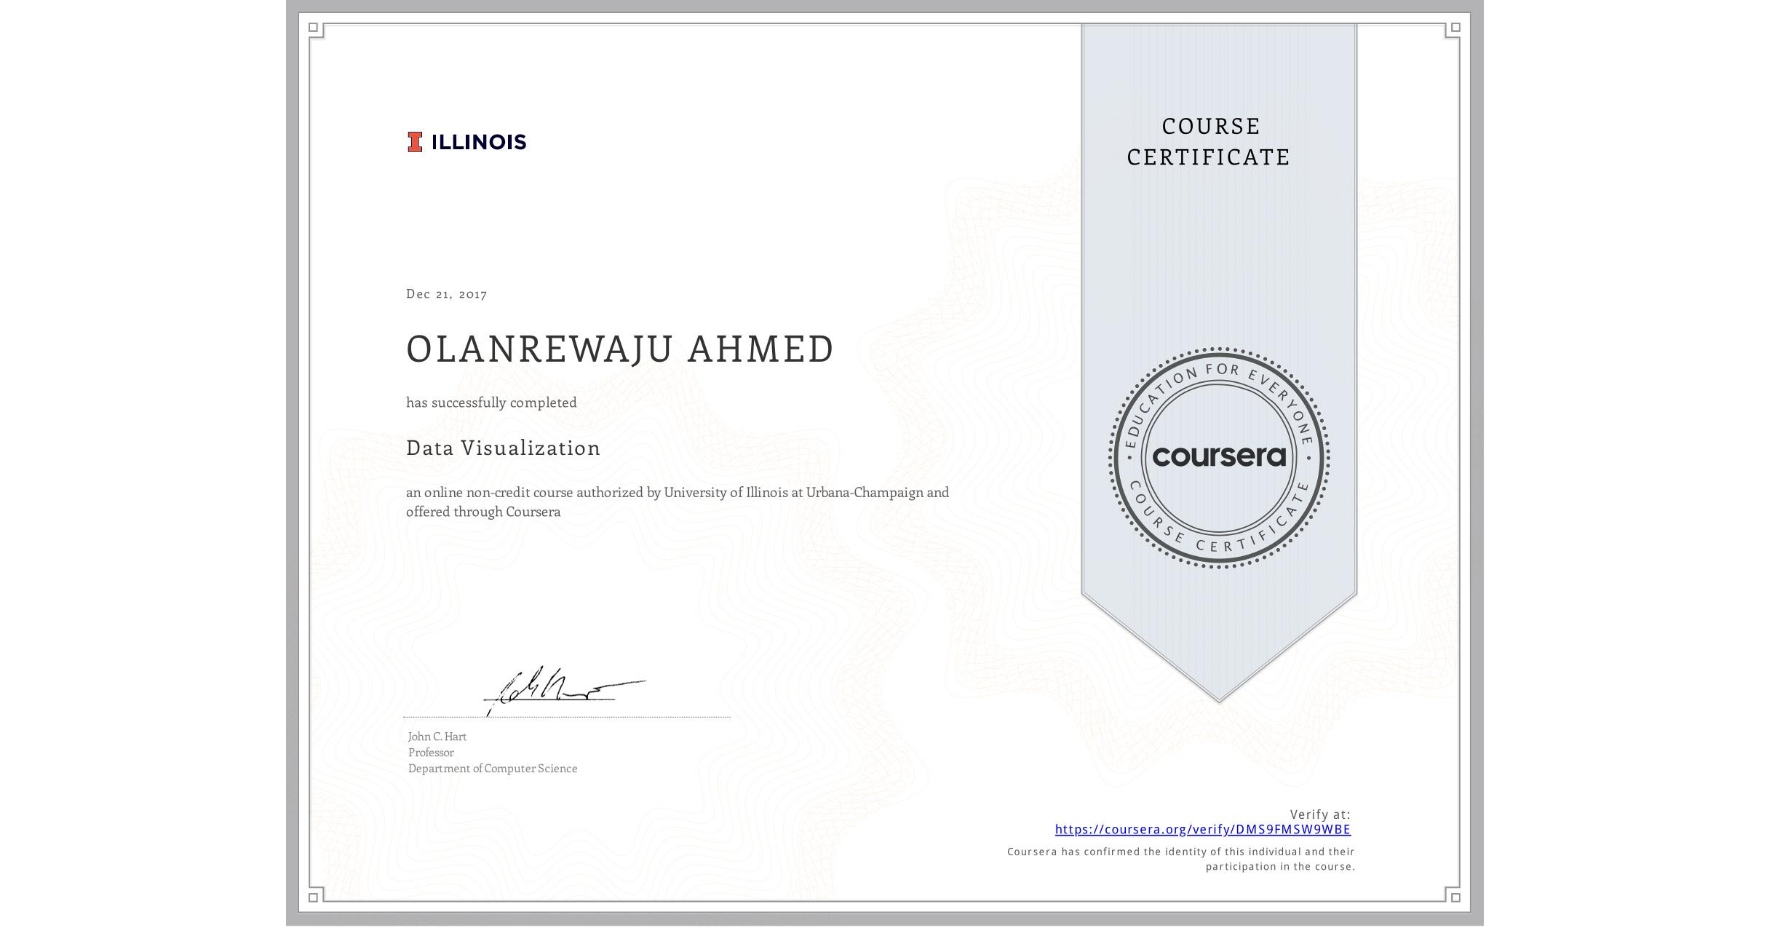 View certificate for OLANREWAJU AHMED, Data Visualization, an online non-credit course authorized by University of Illinois at Urbana-Champaign and offered through Coursera